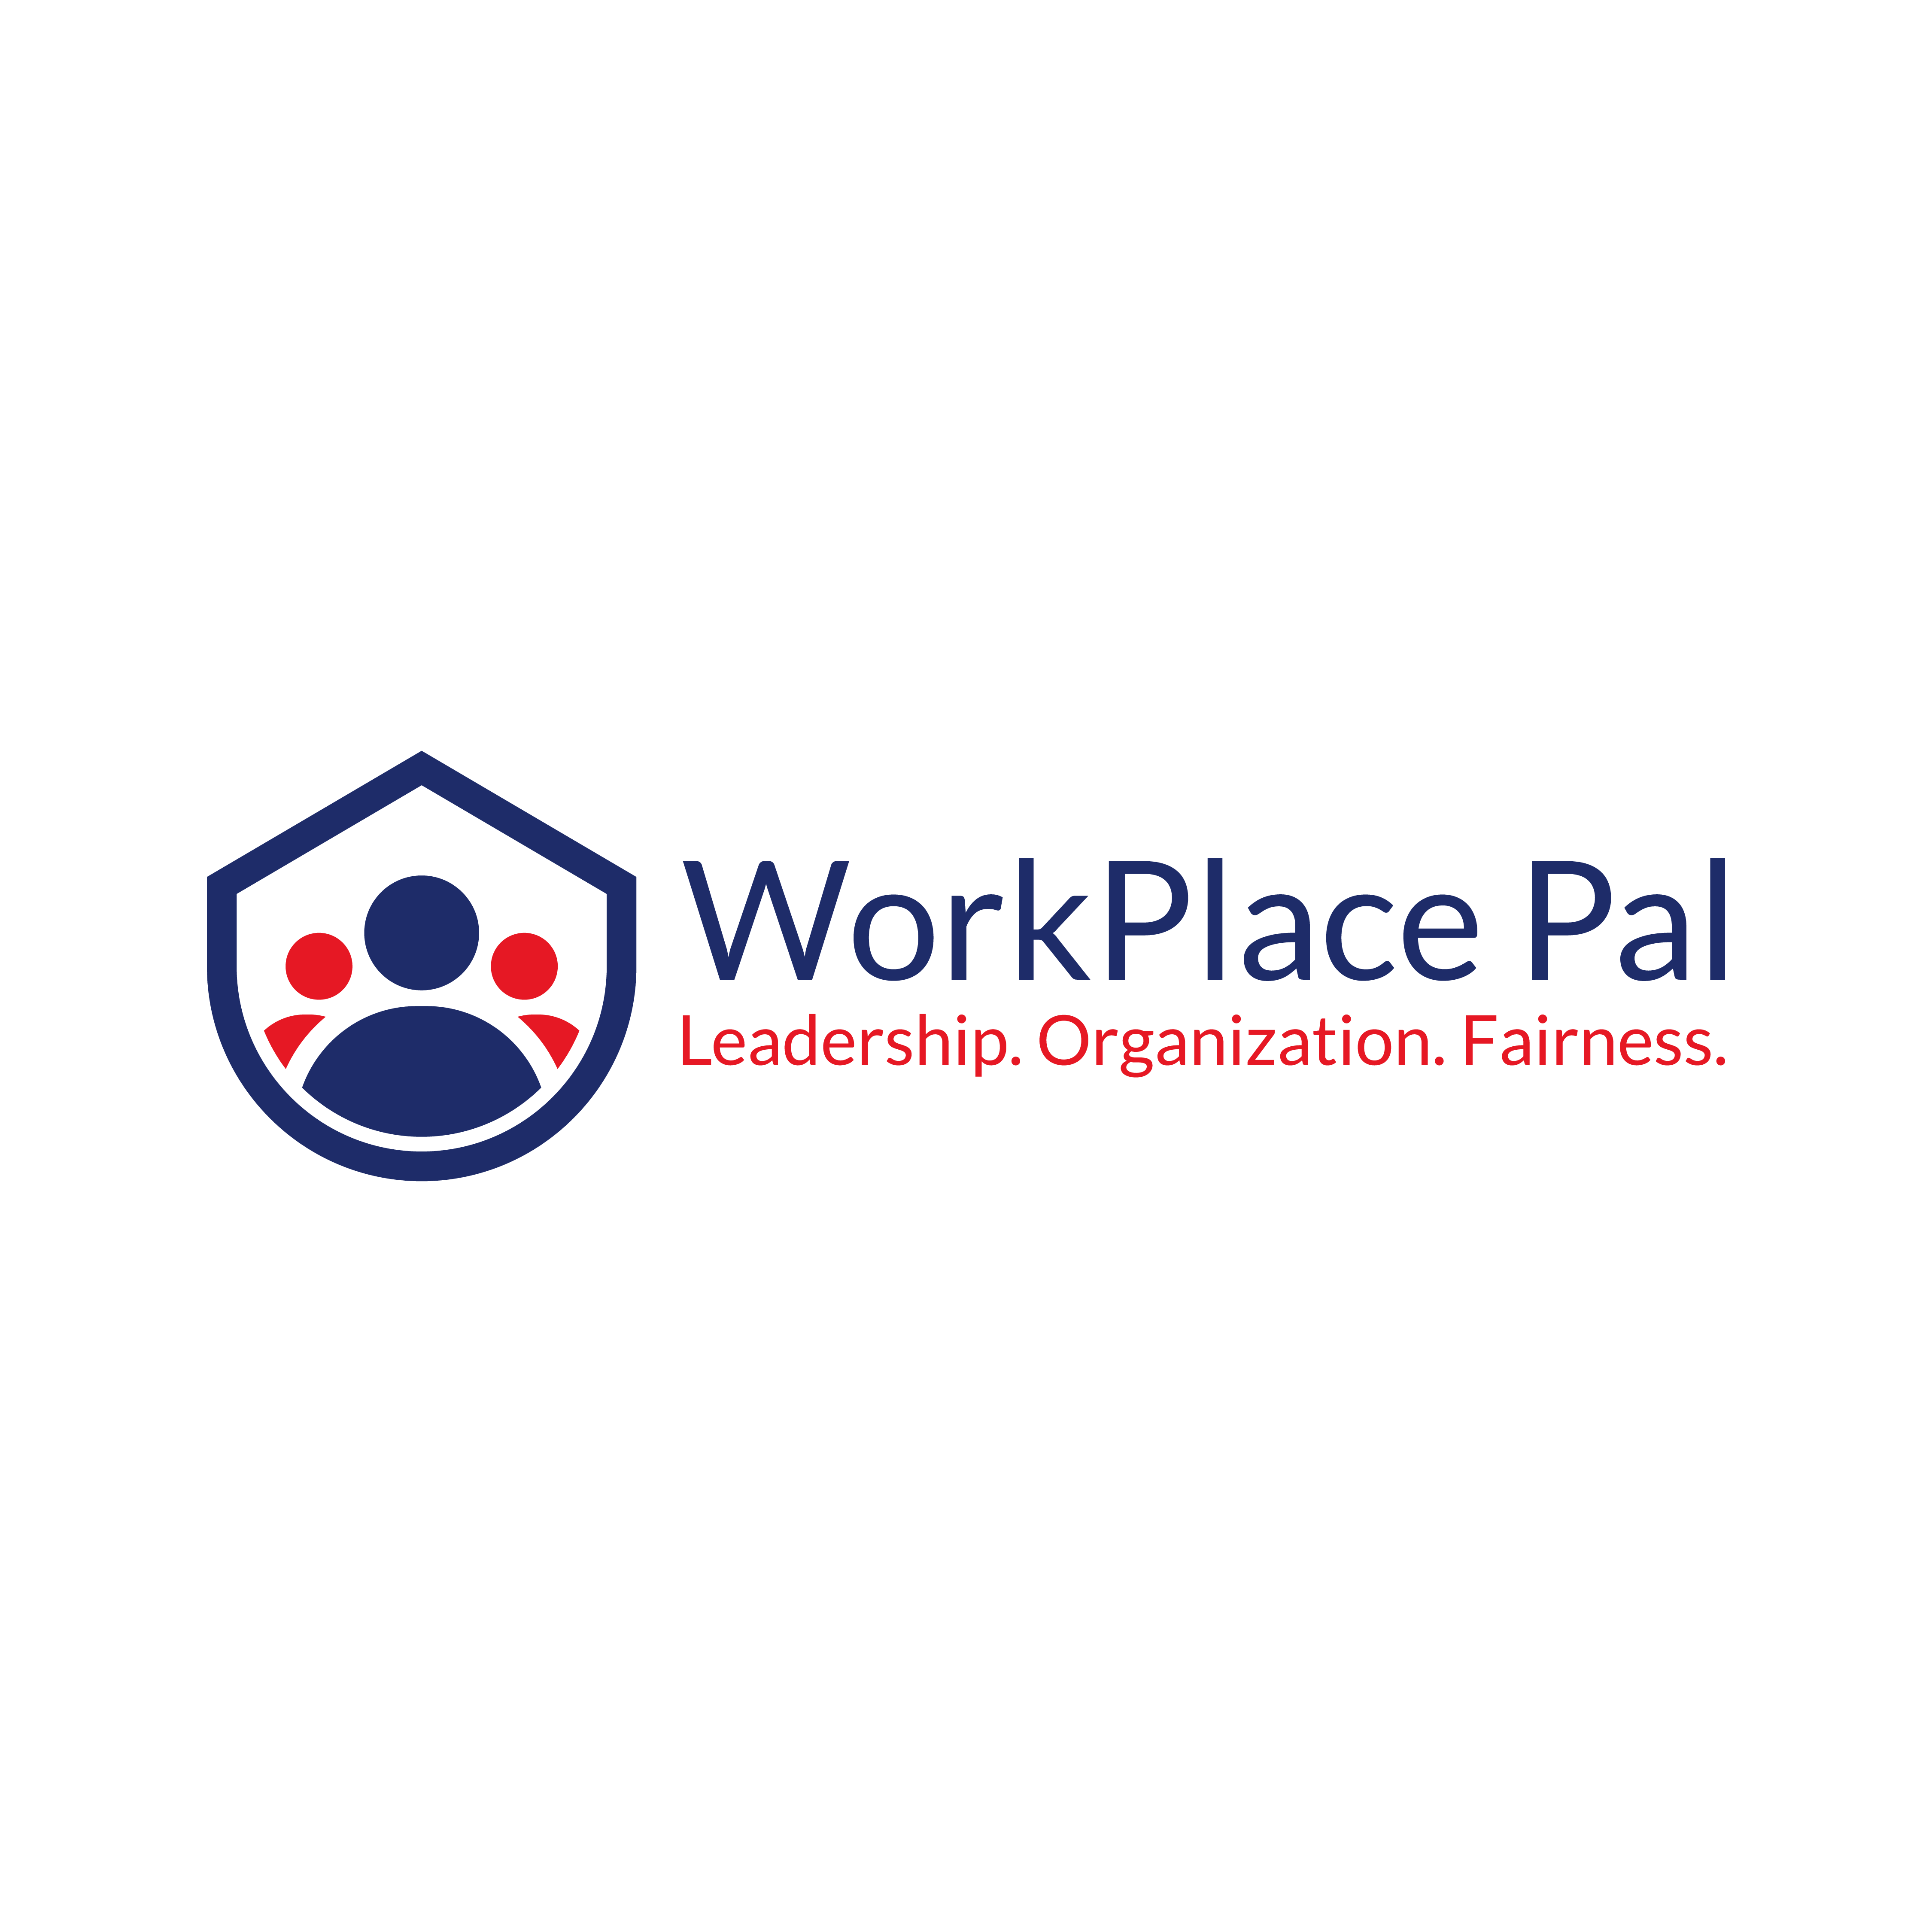 Workplace Pal Technology Solutions by CDMA Business Model